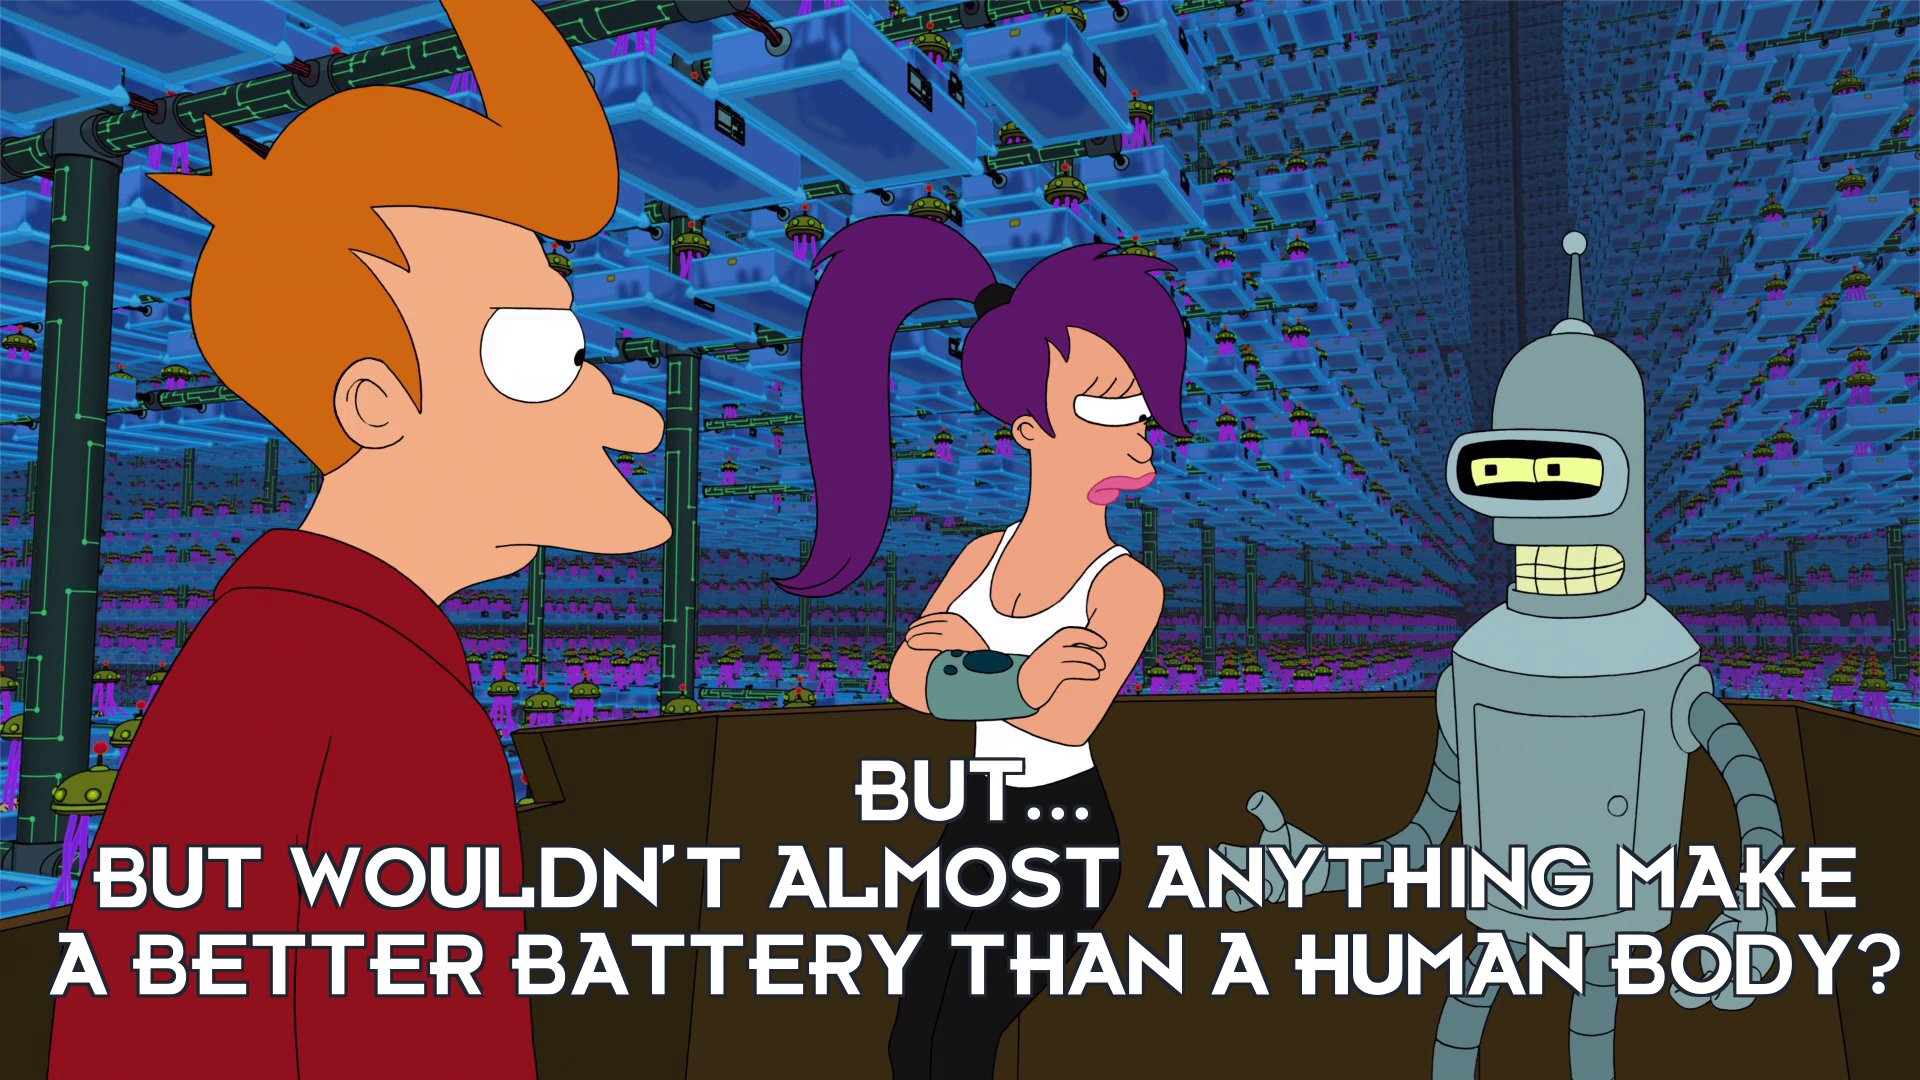 Bender Bending Rodriguez: But... but wouldn't almost anything make a better battery than a human body?